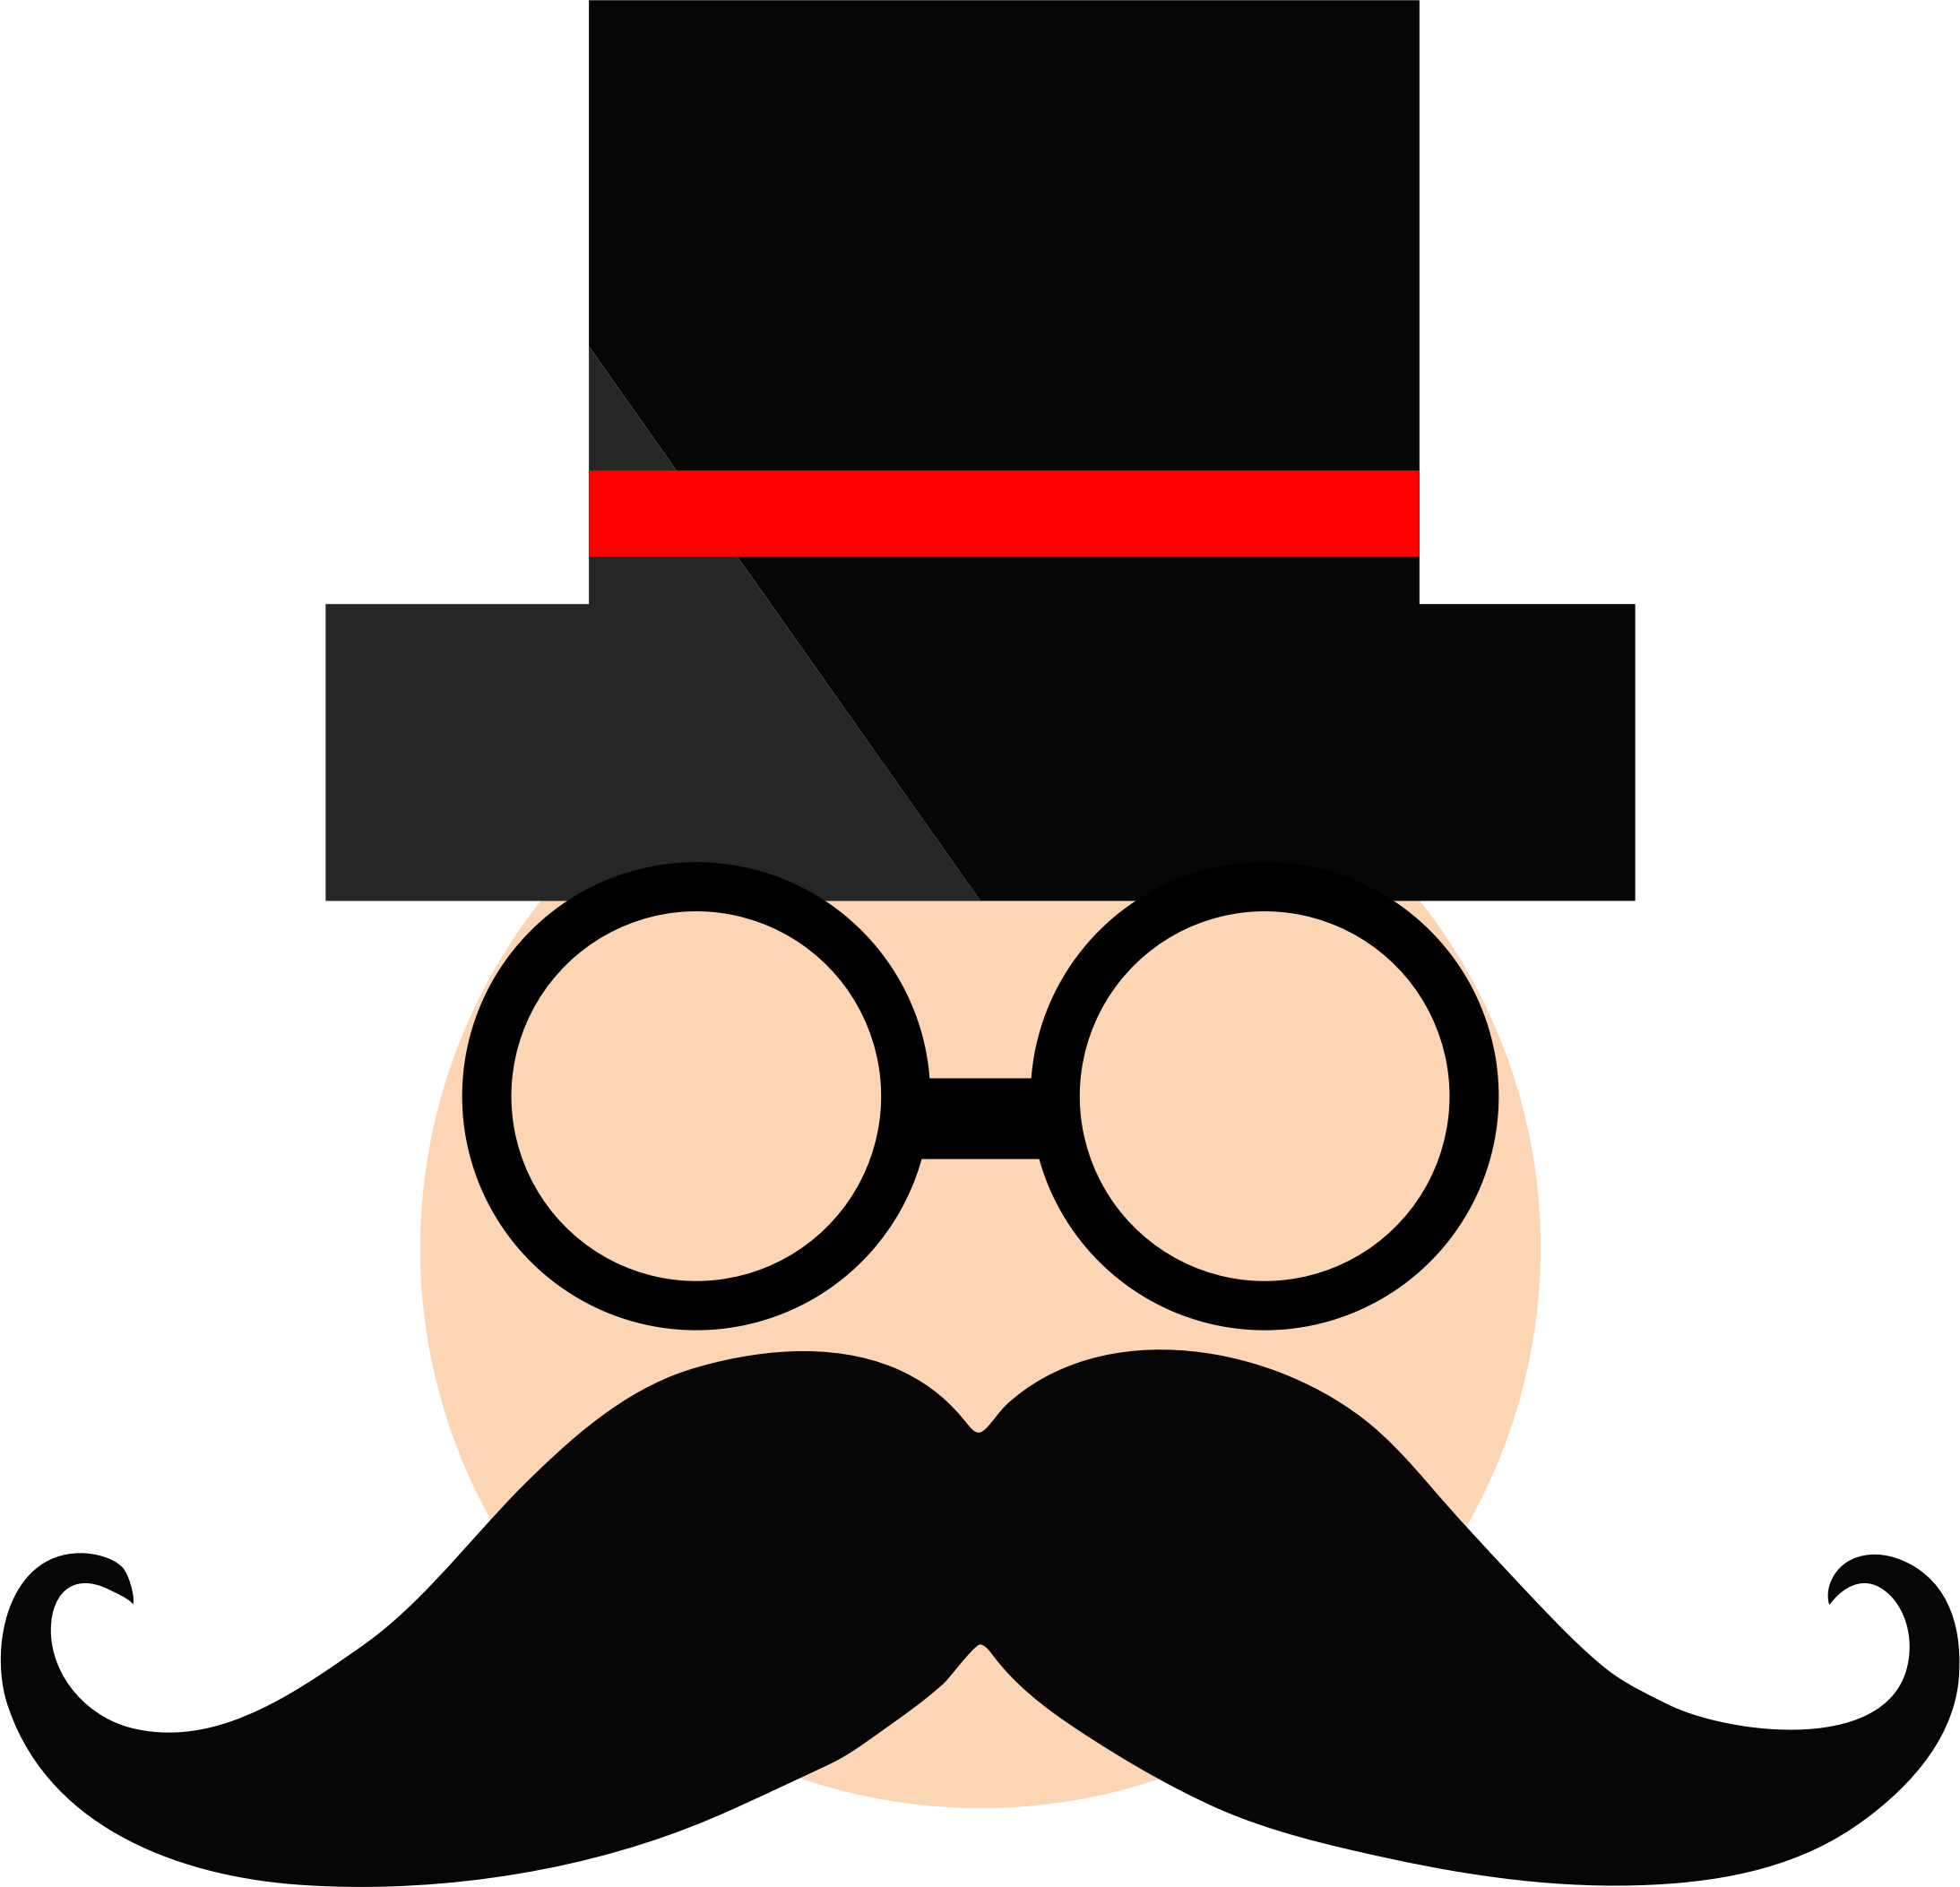 Moustache clipart chasma. Man in top hat